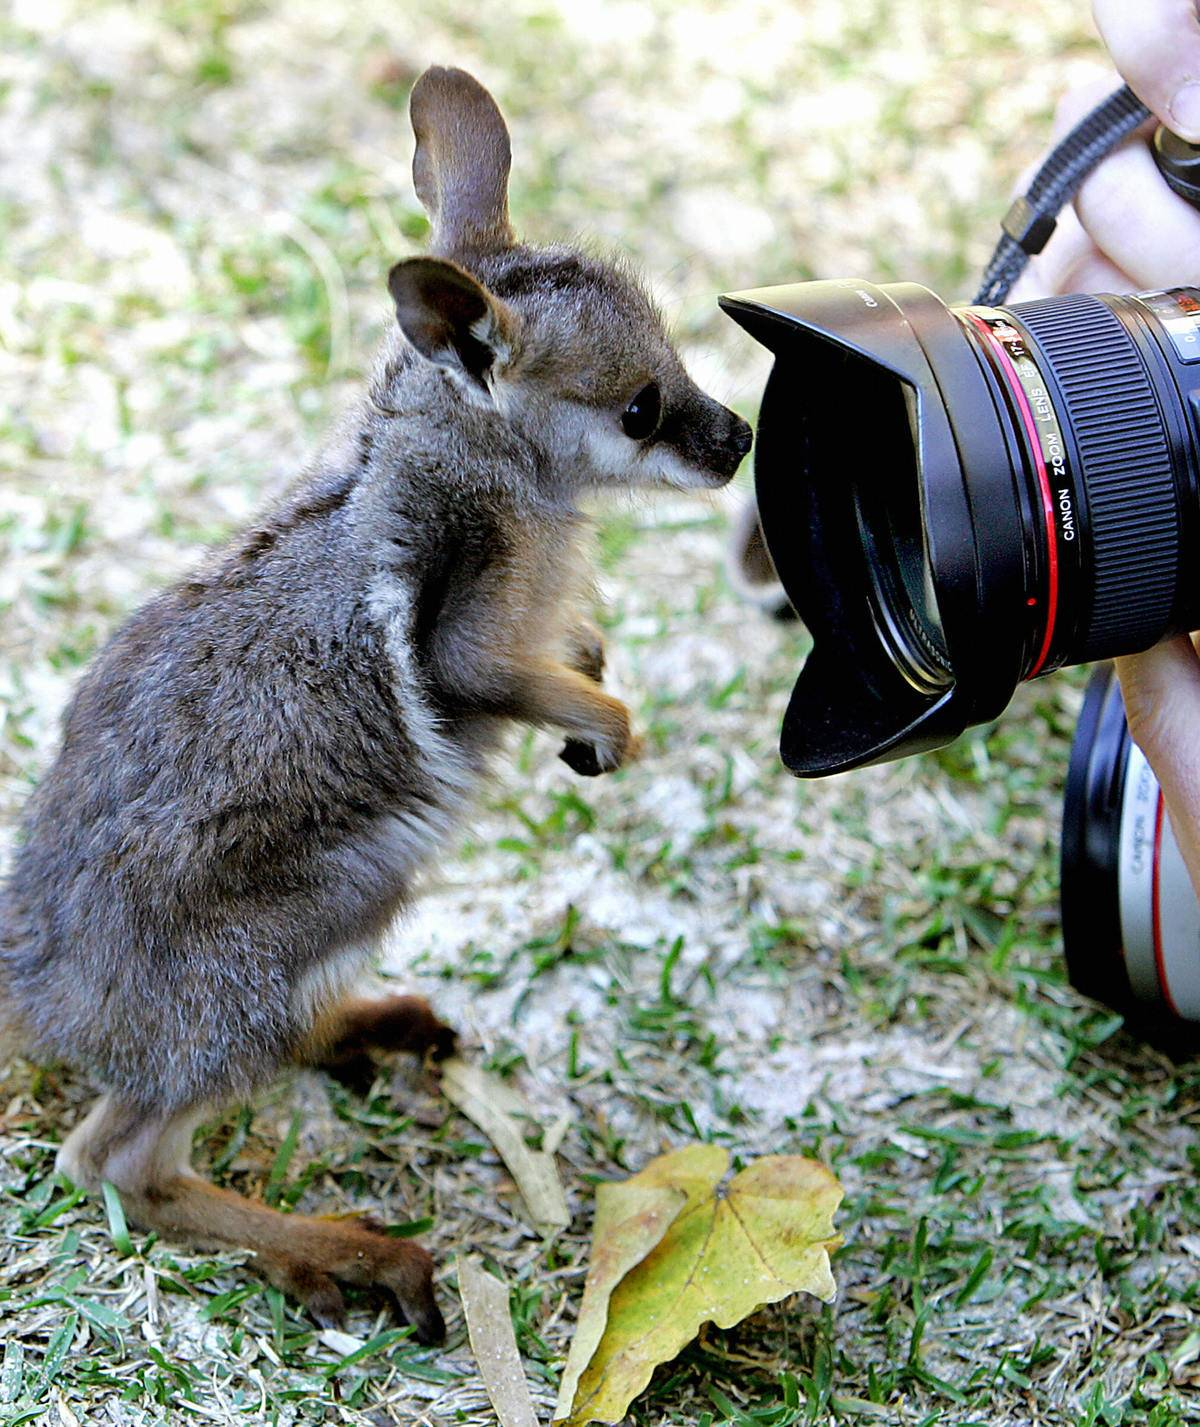 'Petra', a Yellow-footed Rock Wallaby joey, peers into the lens of a camera at Sydney's Taronga Zoo